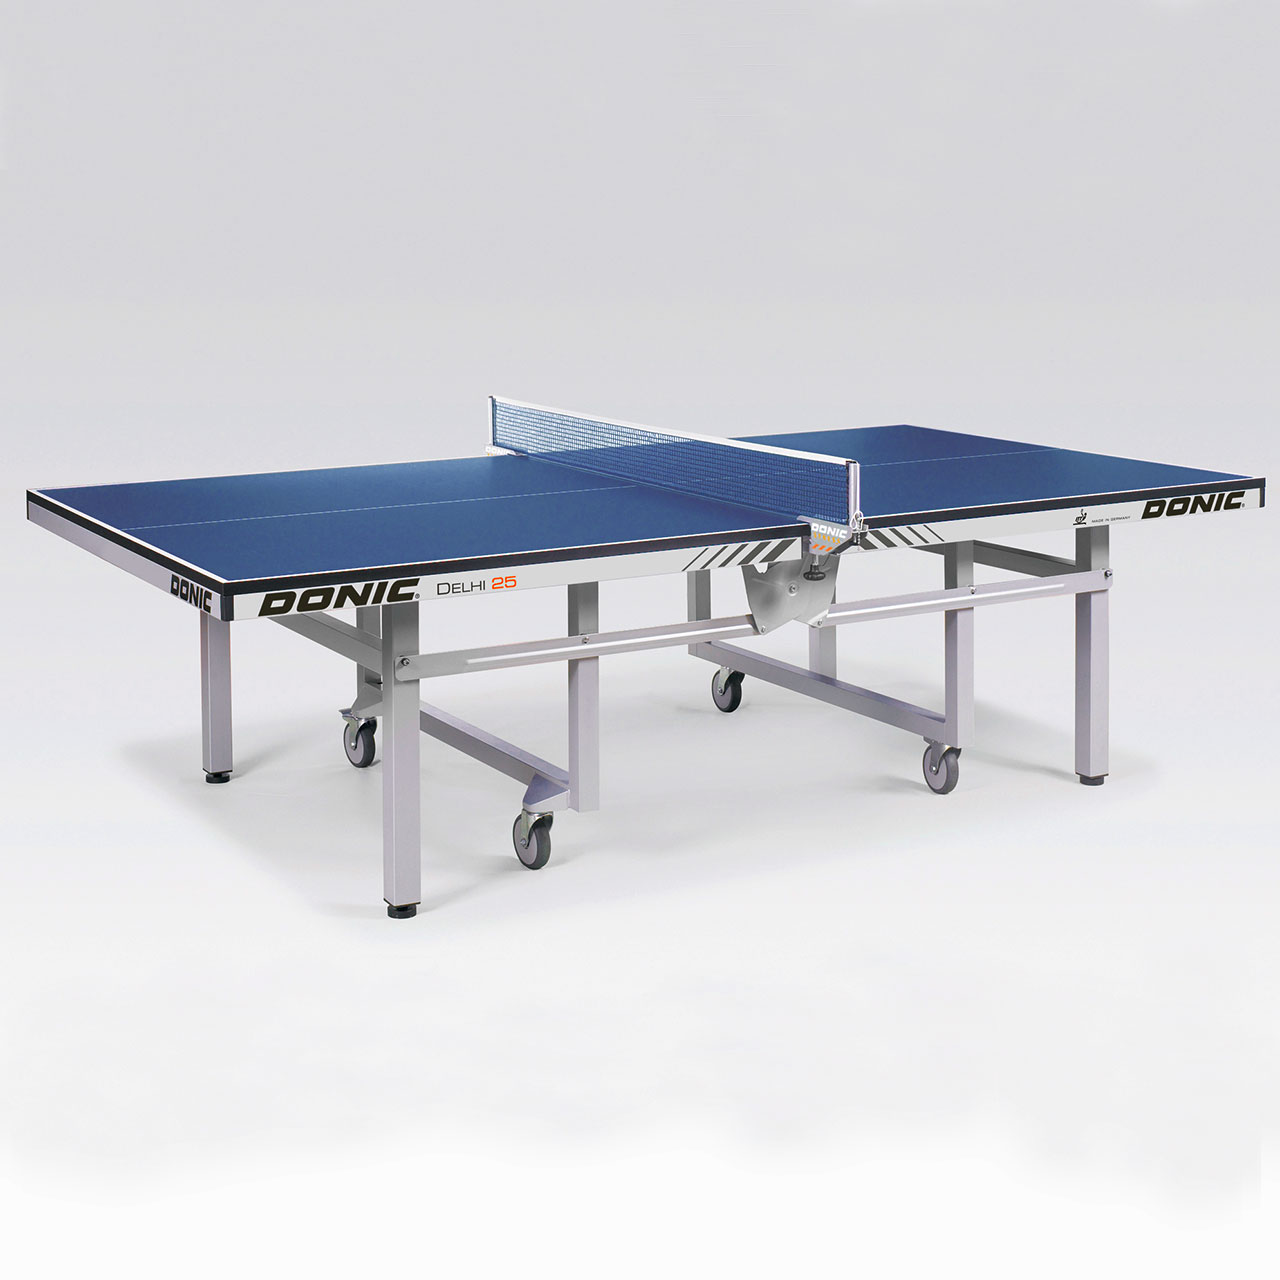 Donic Delhi 25 Table Tennis Table